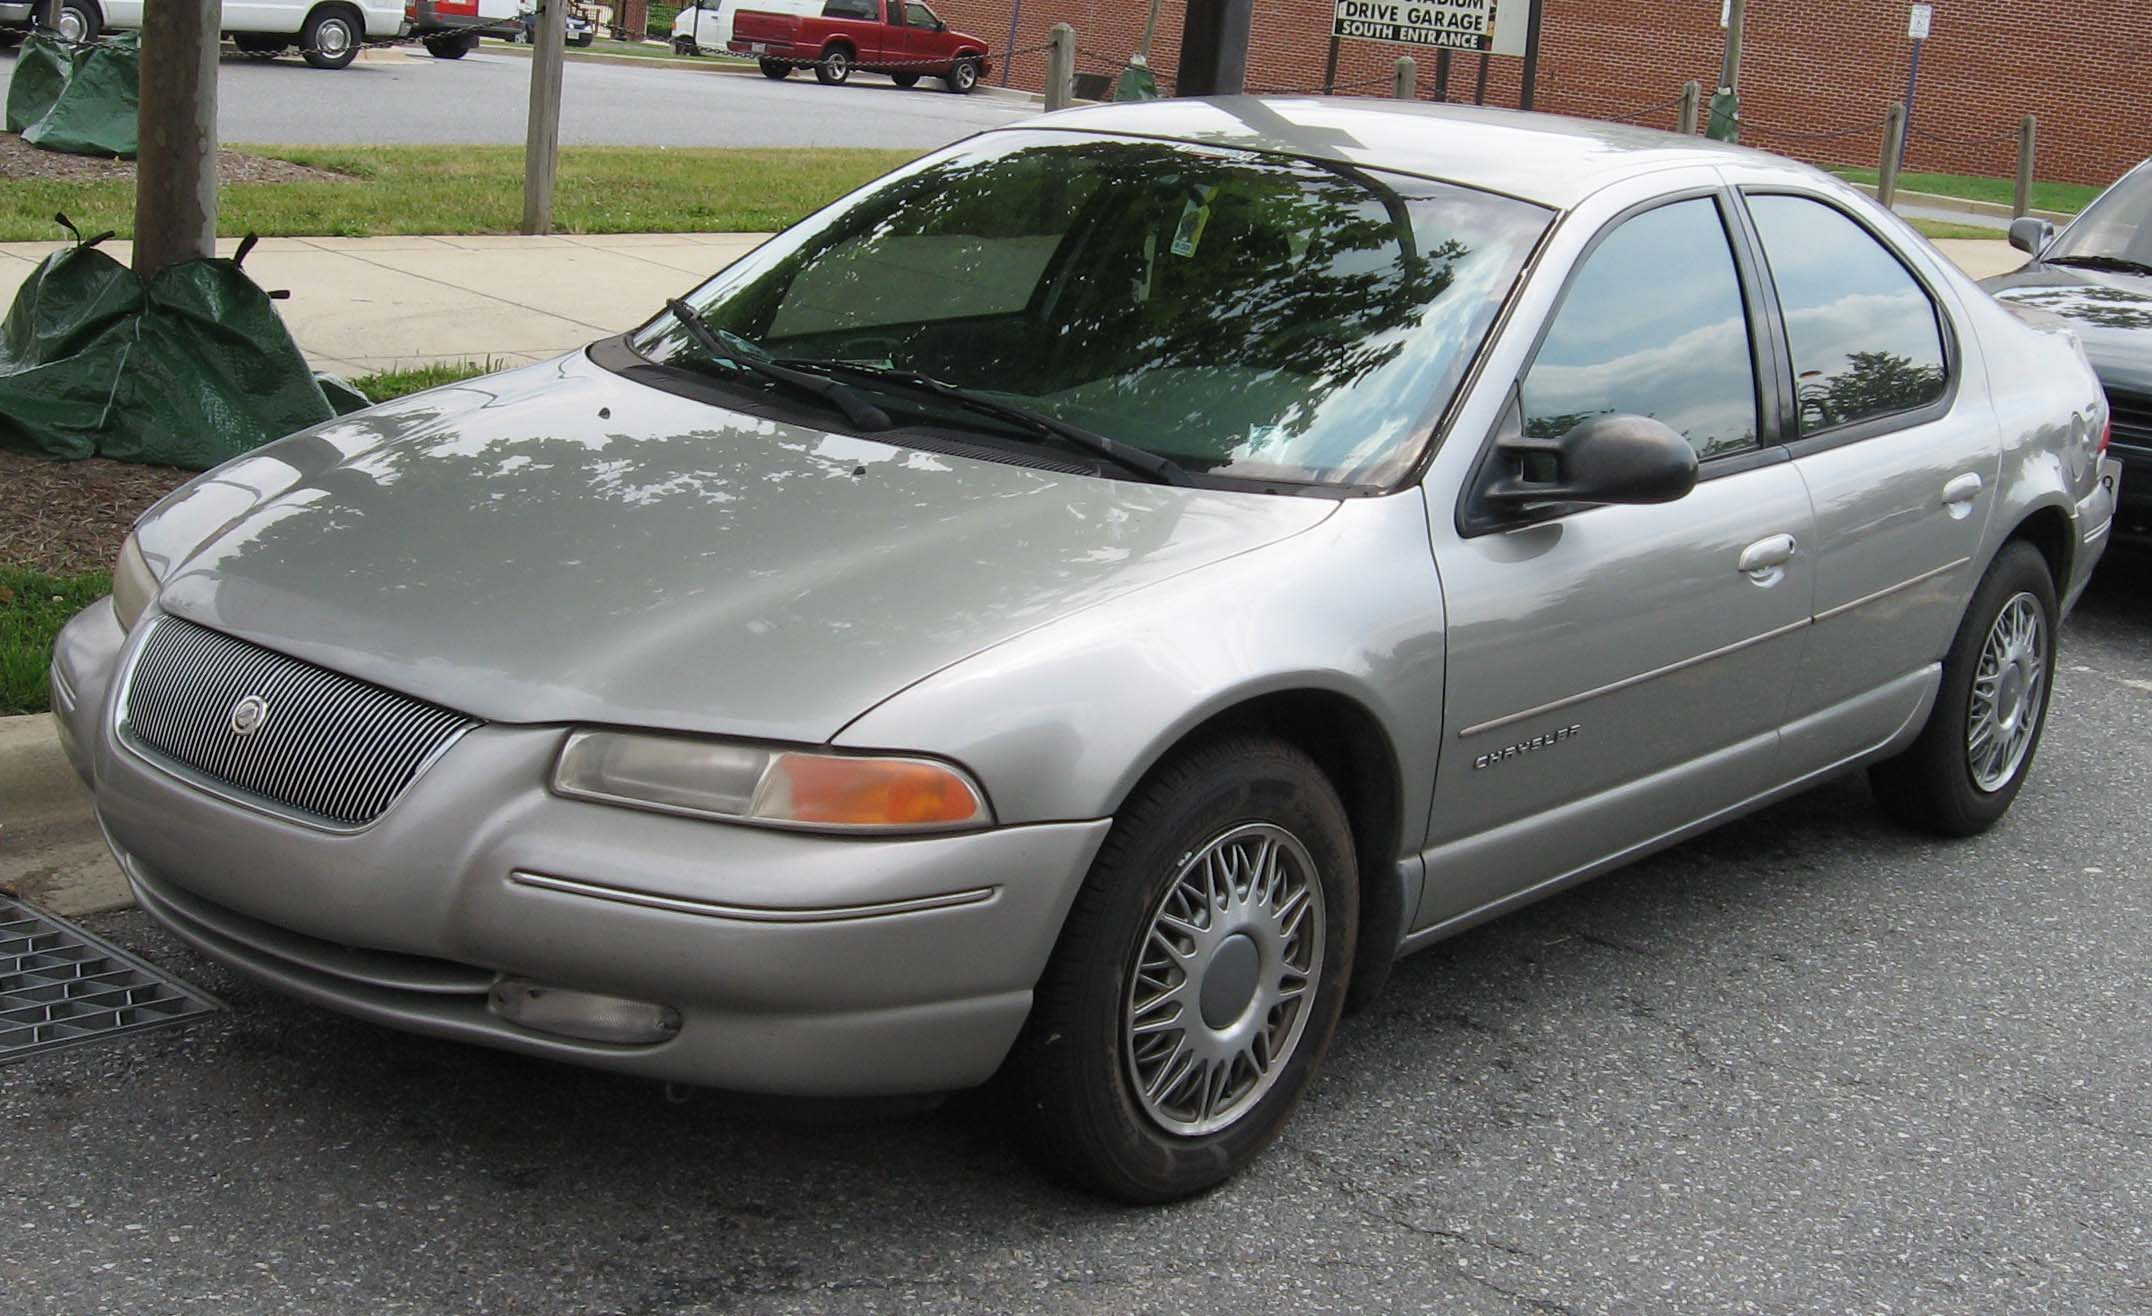 1997 Chrysler Cirrus #6